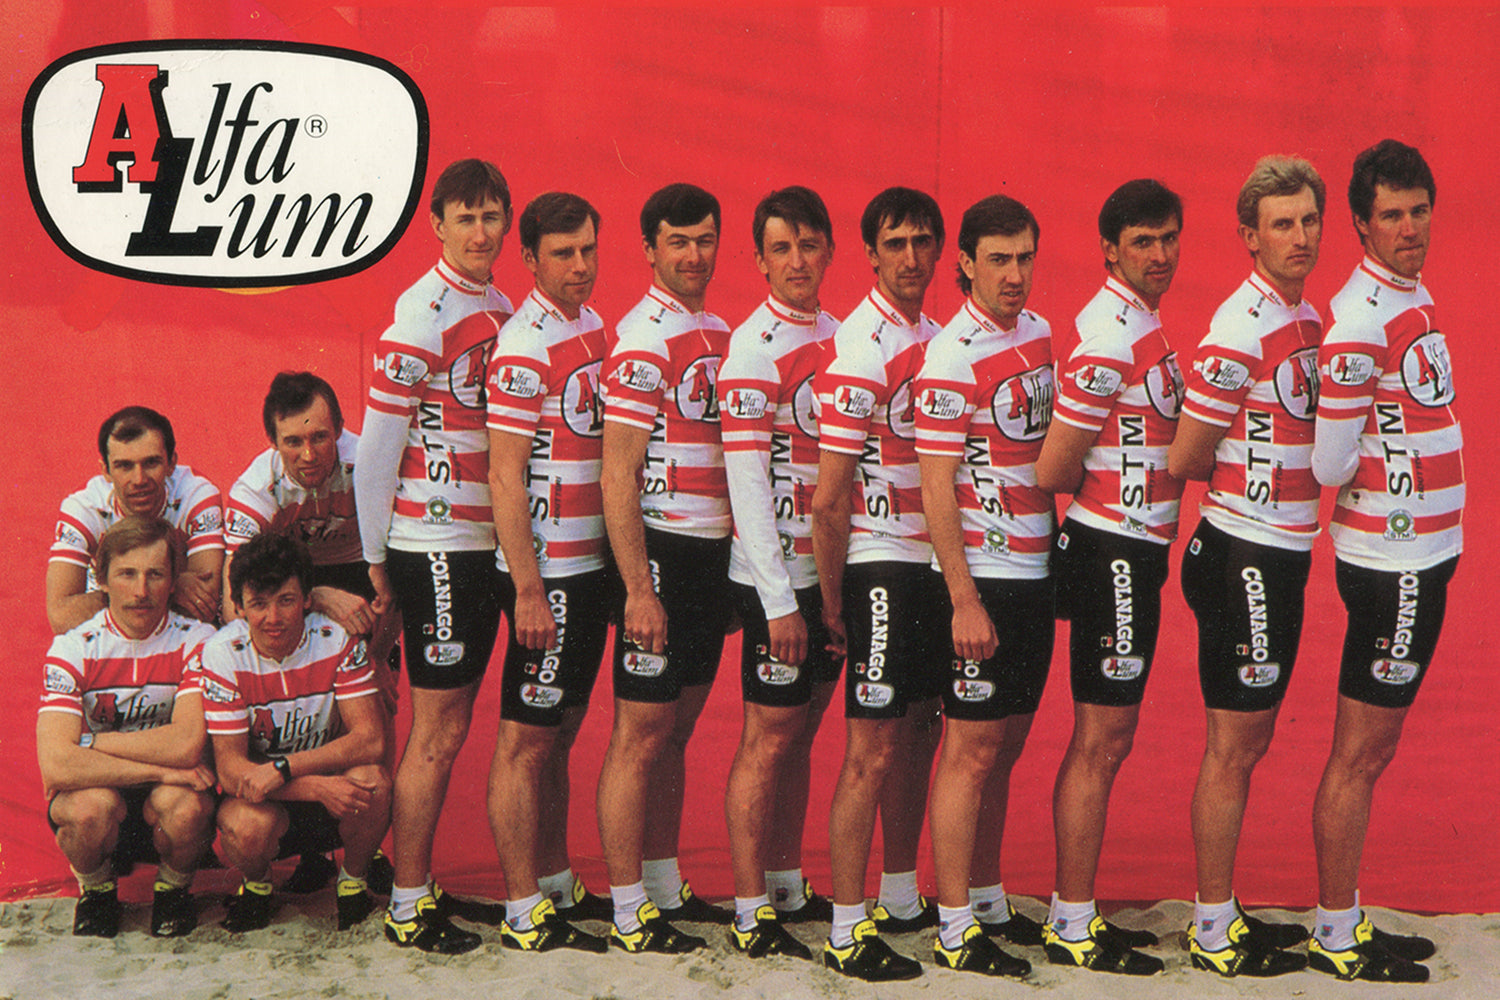 Alfa Lum Cycling Team - Part 3